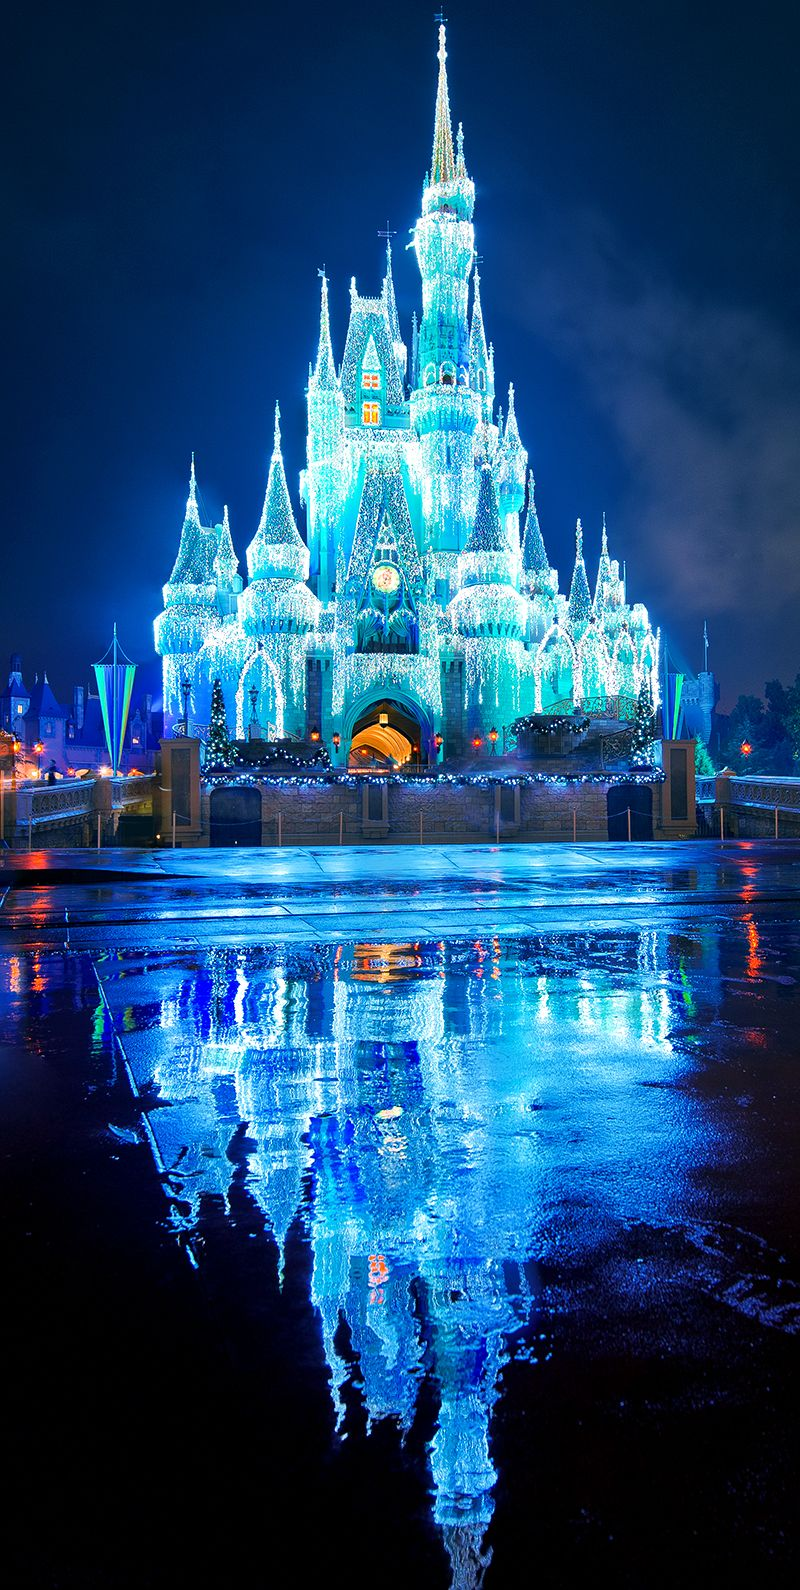 Disney world iphone wallpaper tumblr - Ultimate 2017 Disney World Christmas Guide